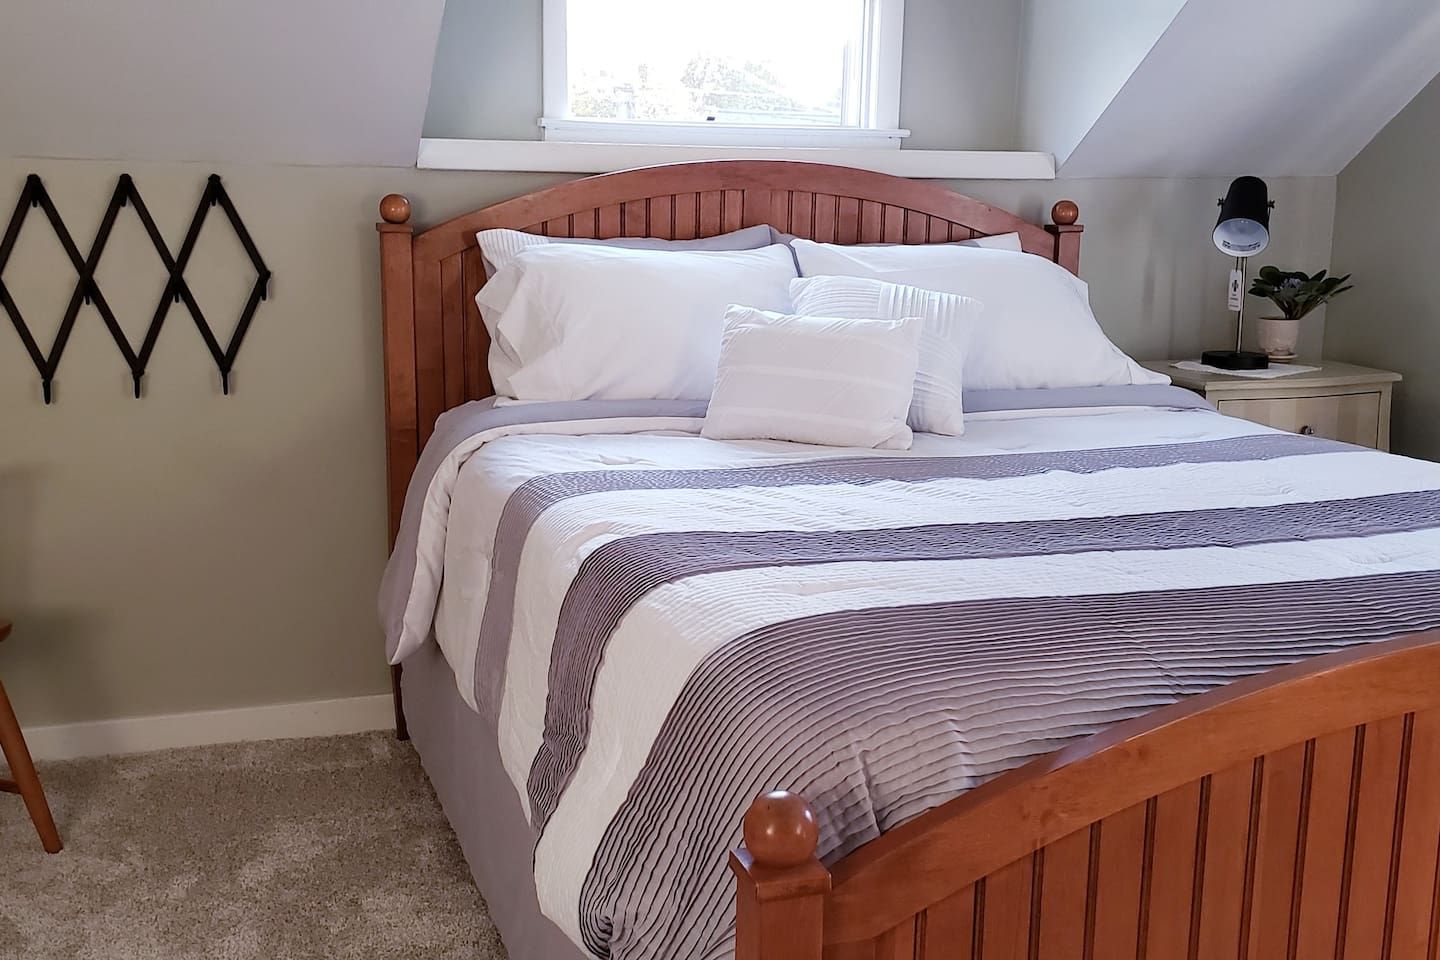 New carpet and fresh linens!  Cozy, clean and private.